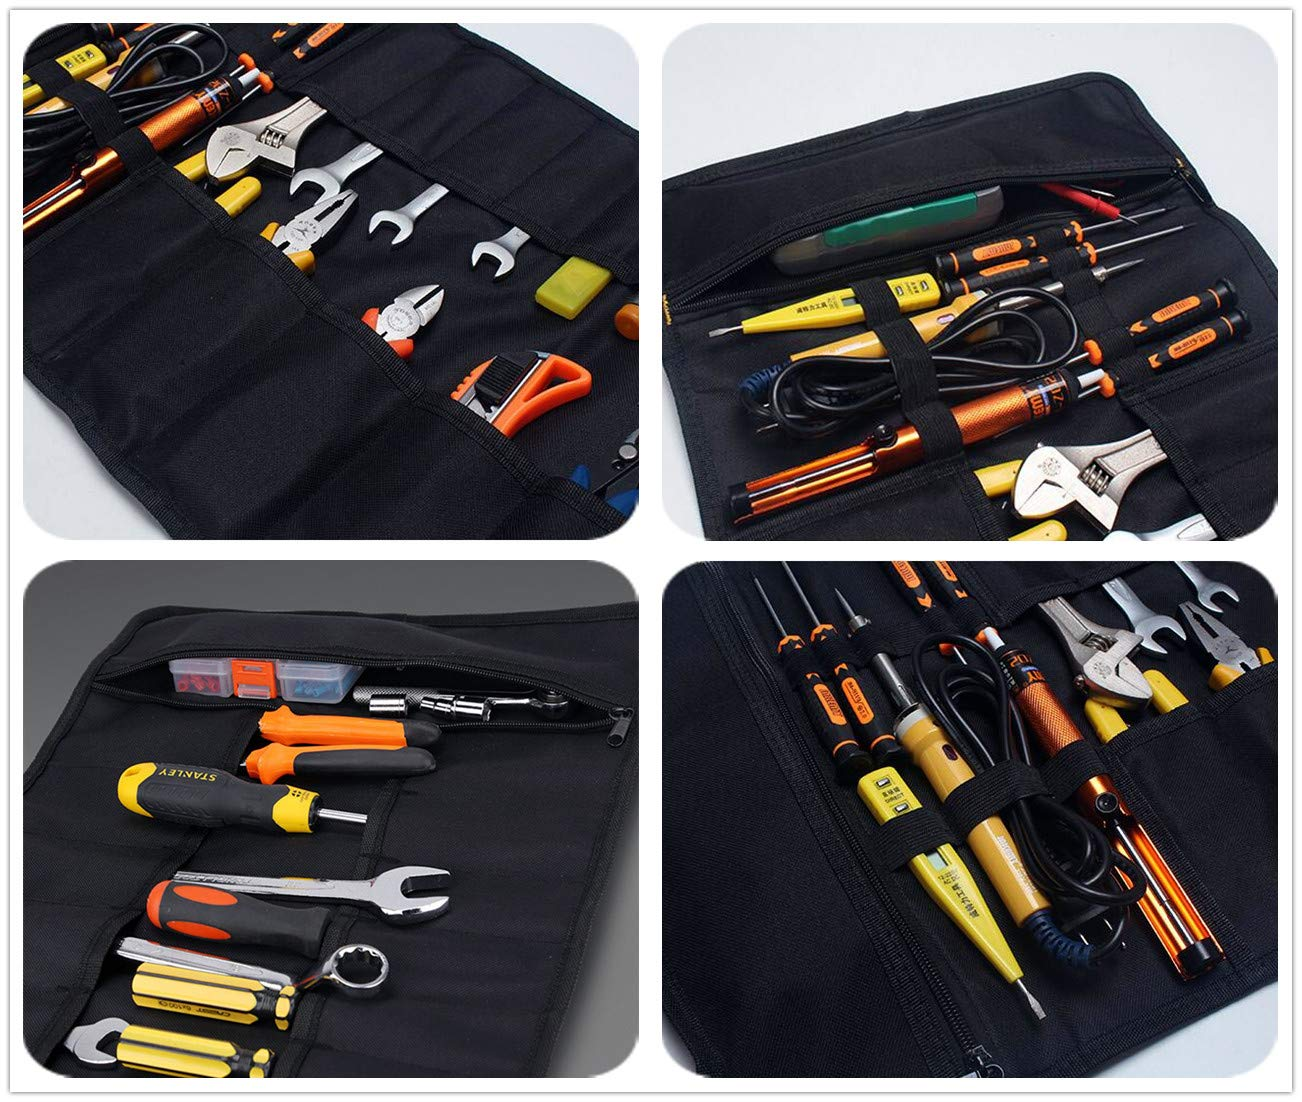 Copechilla Tool roll Canvas Professional Portable with 22 Pockets,Rubber Handle,Material Double Layer Thickening 600D Oxford,59X36CM,Roll Tool Bag for Electrician,car Mechanic,Hand Tools Organizer